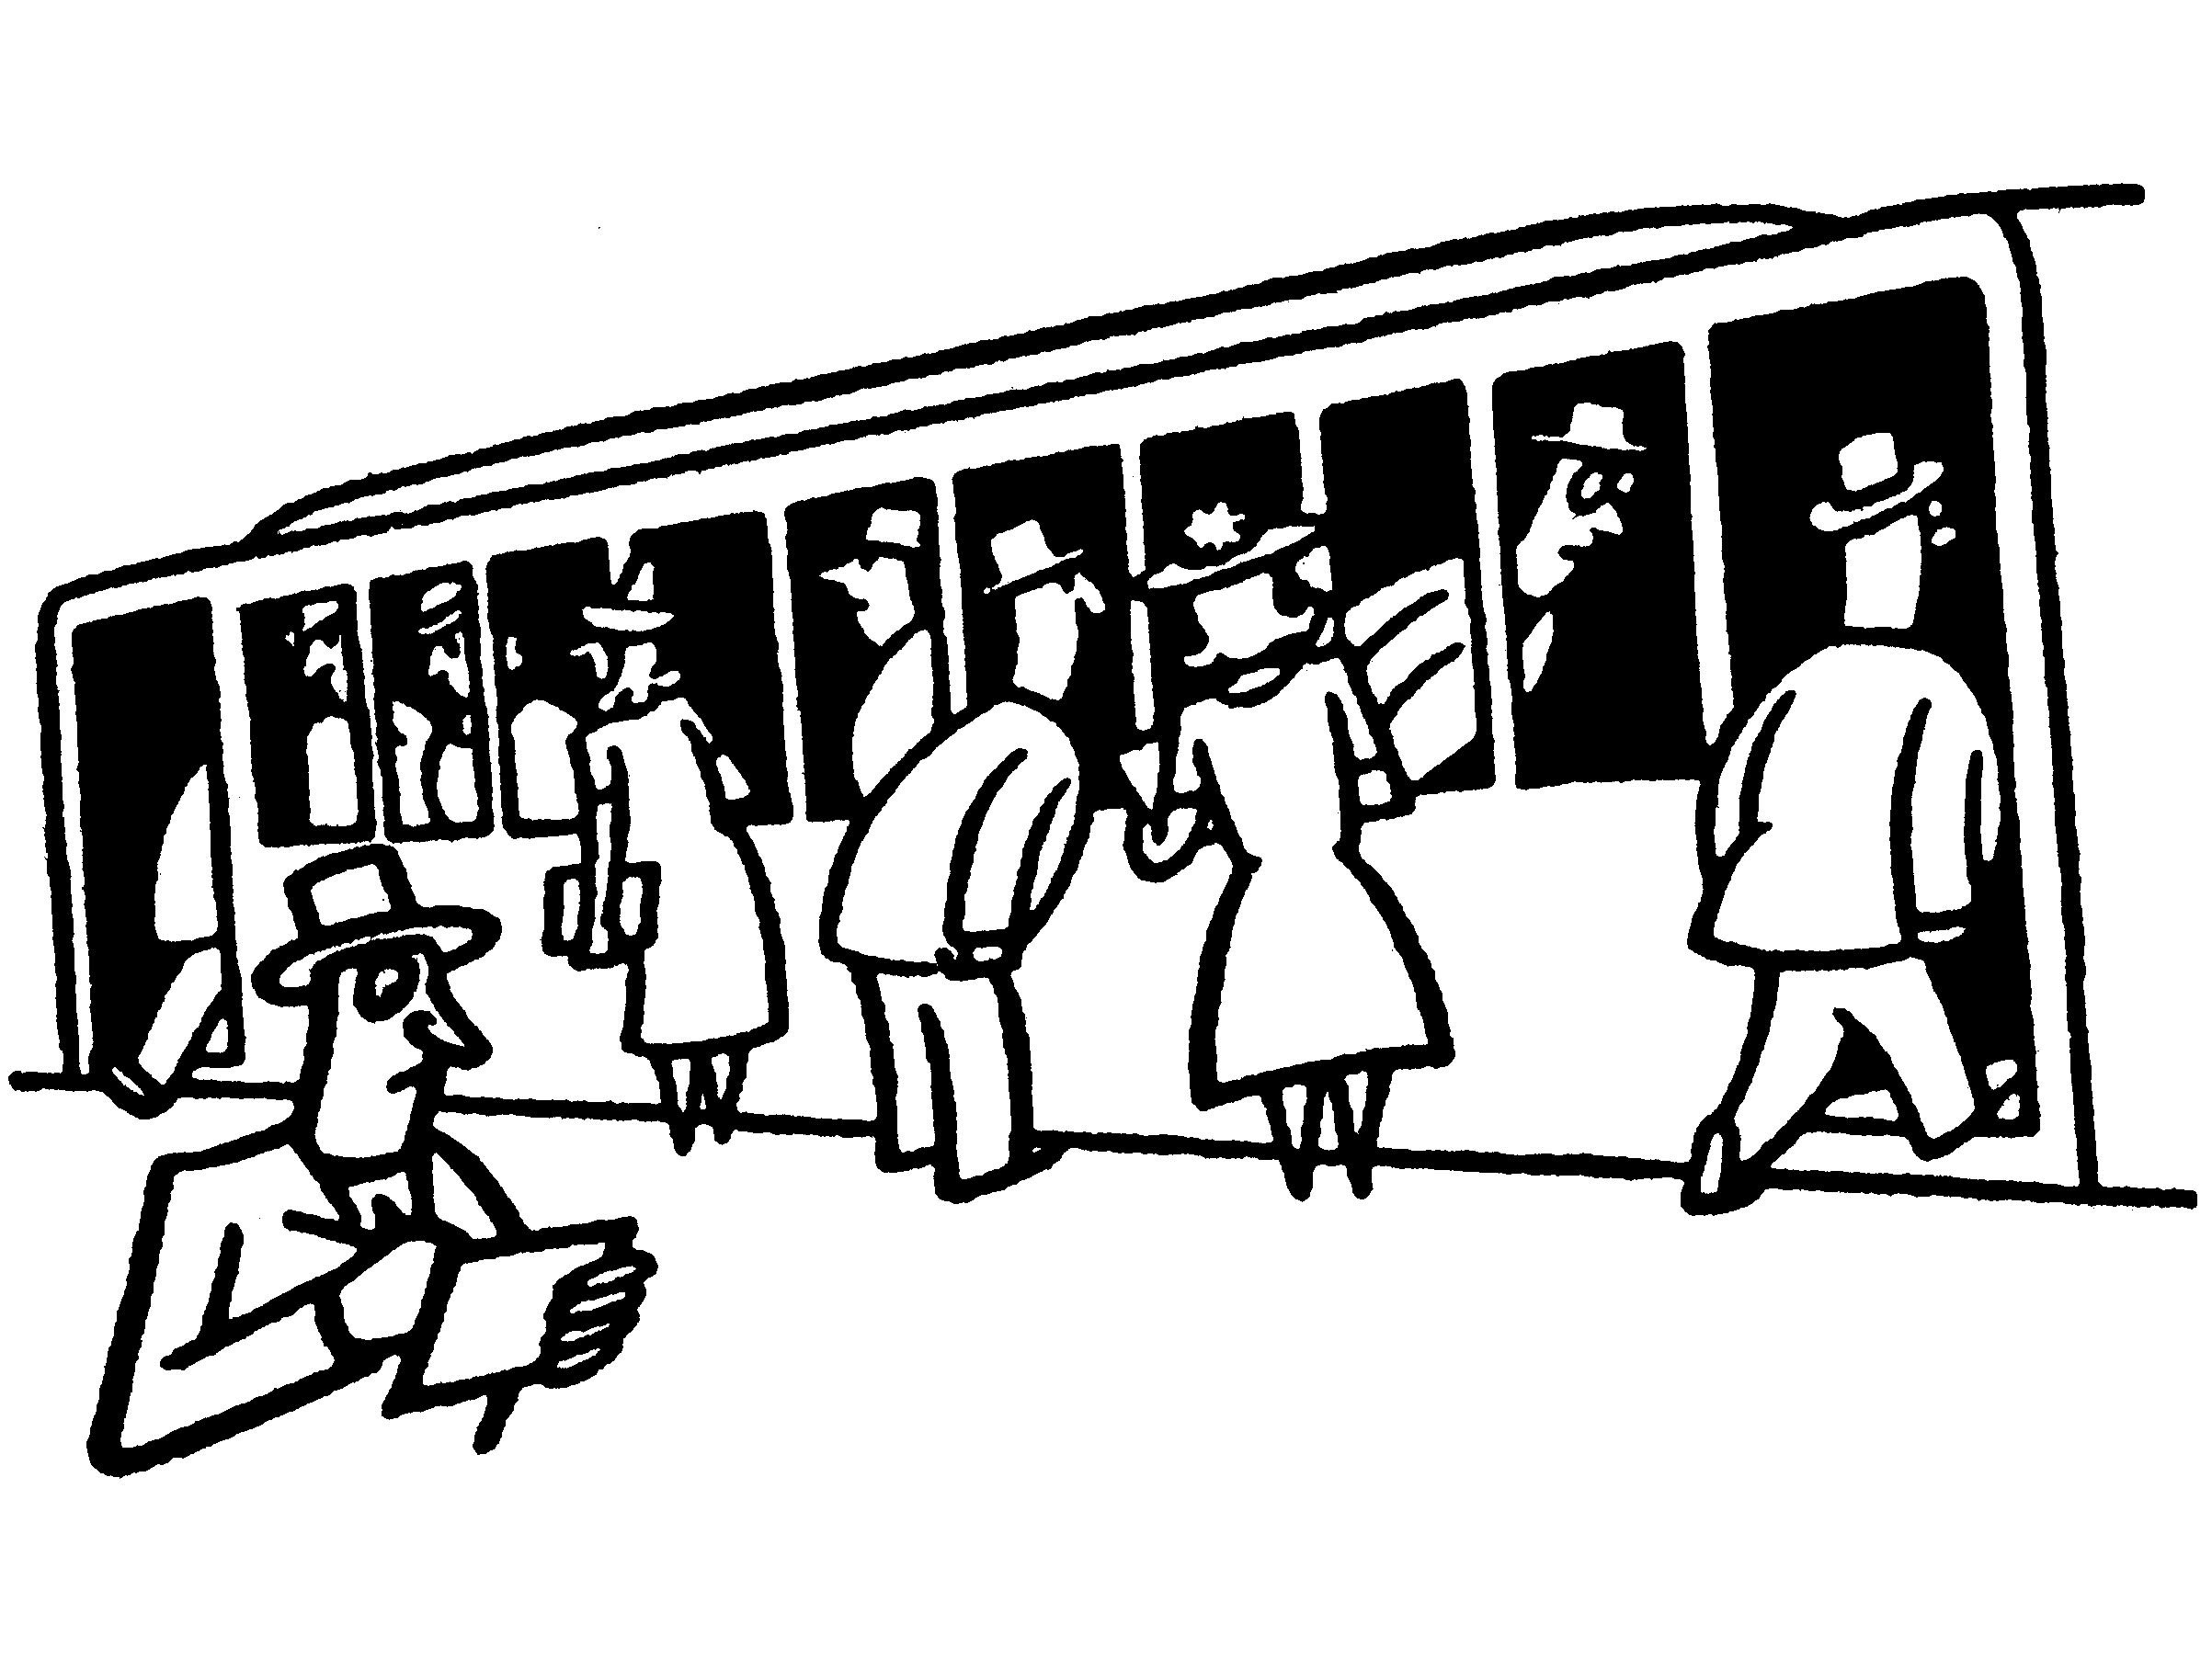 Peeking head first into a hole clipart picture free library Sketching the M.T.A. with a Subway Archeologist | The New Yorker picture free library